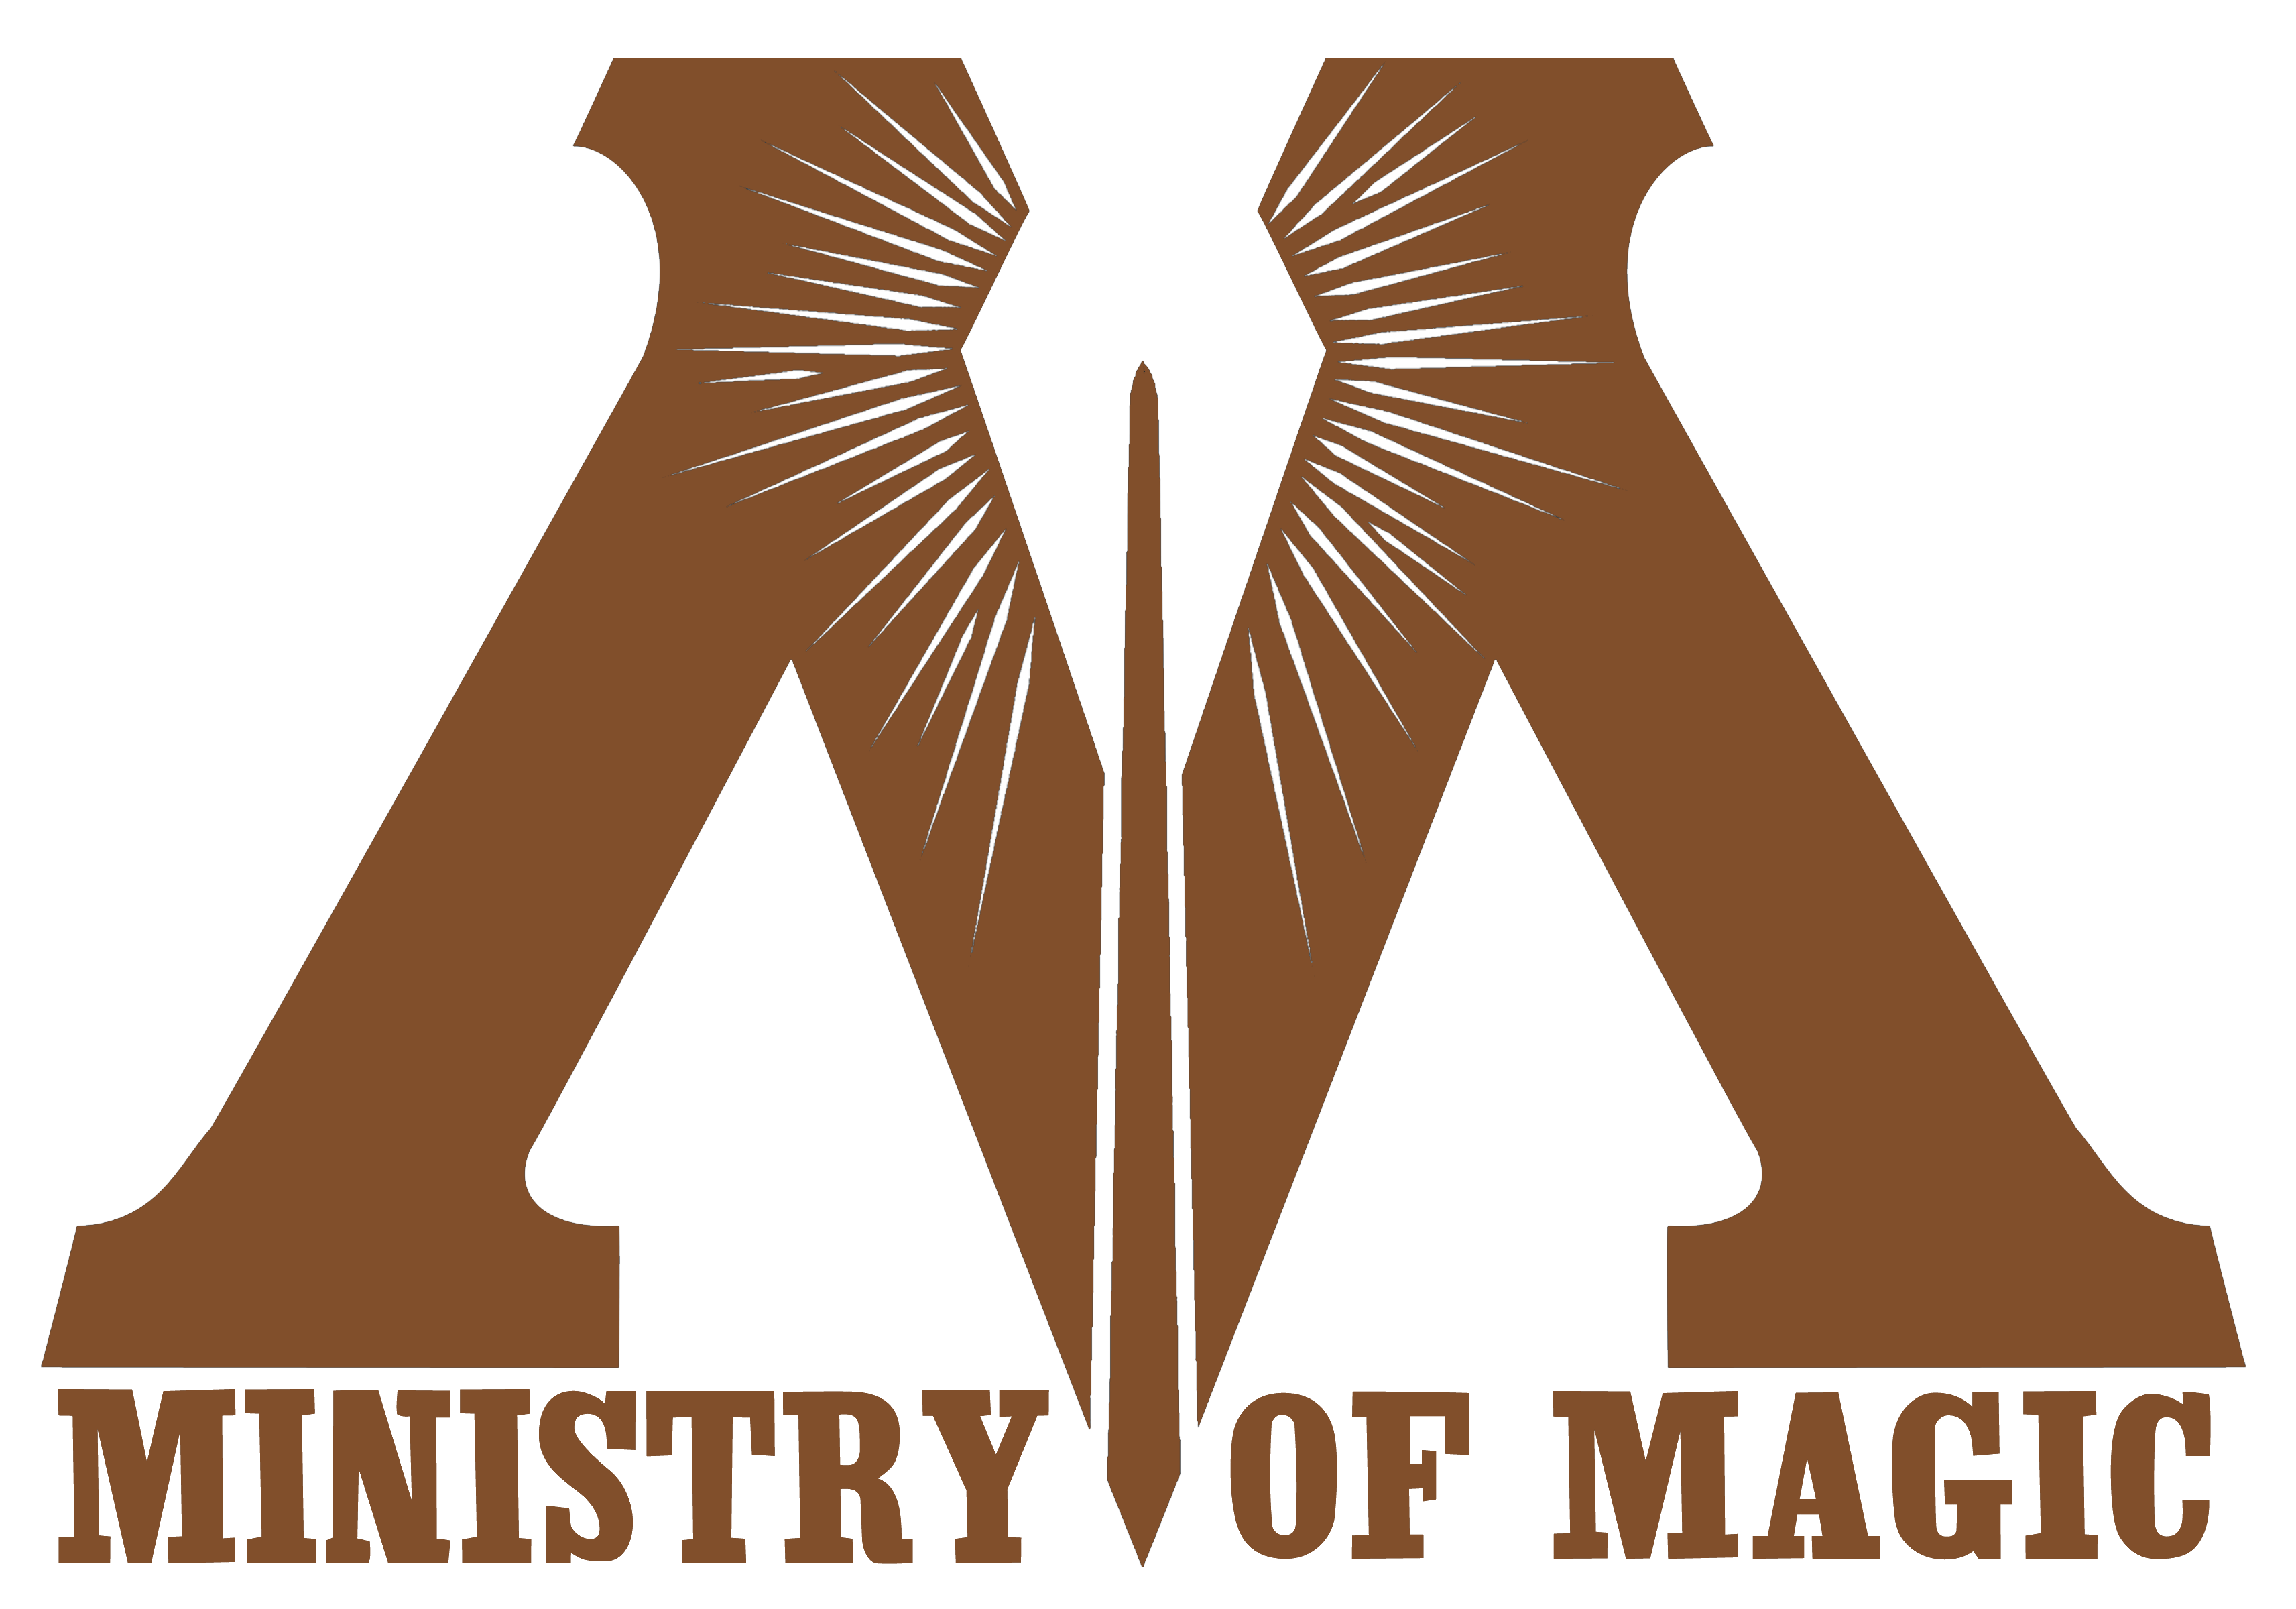 Ministry of magic logo.png